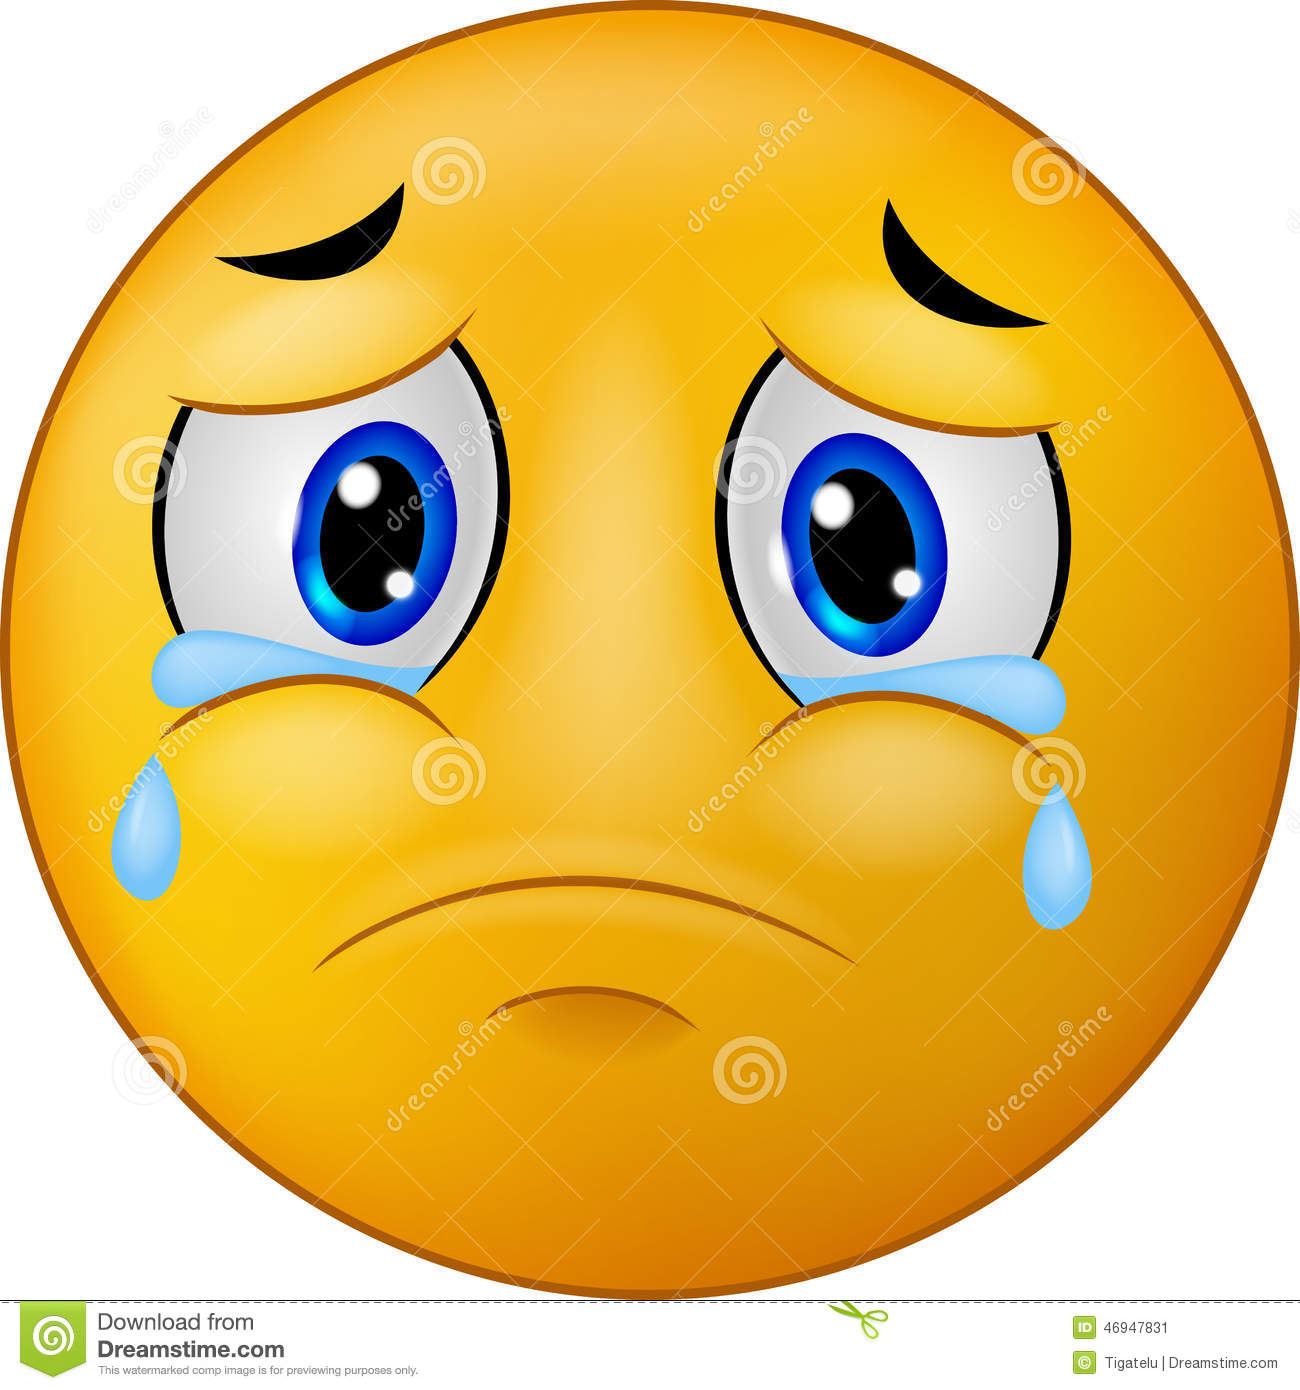 Cartoon Sad Smiley Emoticon Stock Vector - Image: 46947831